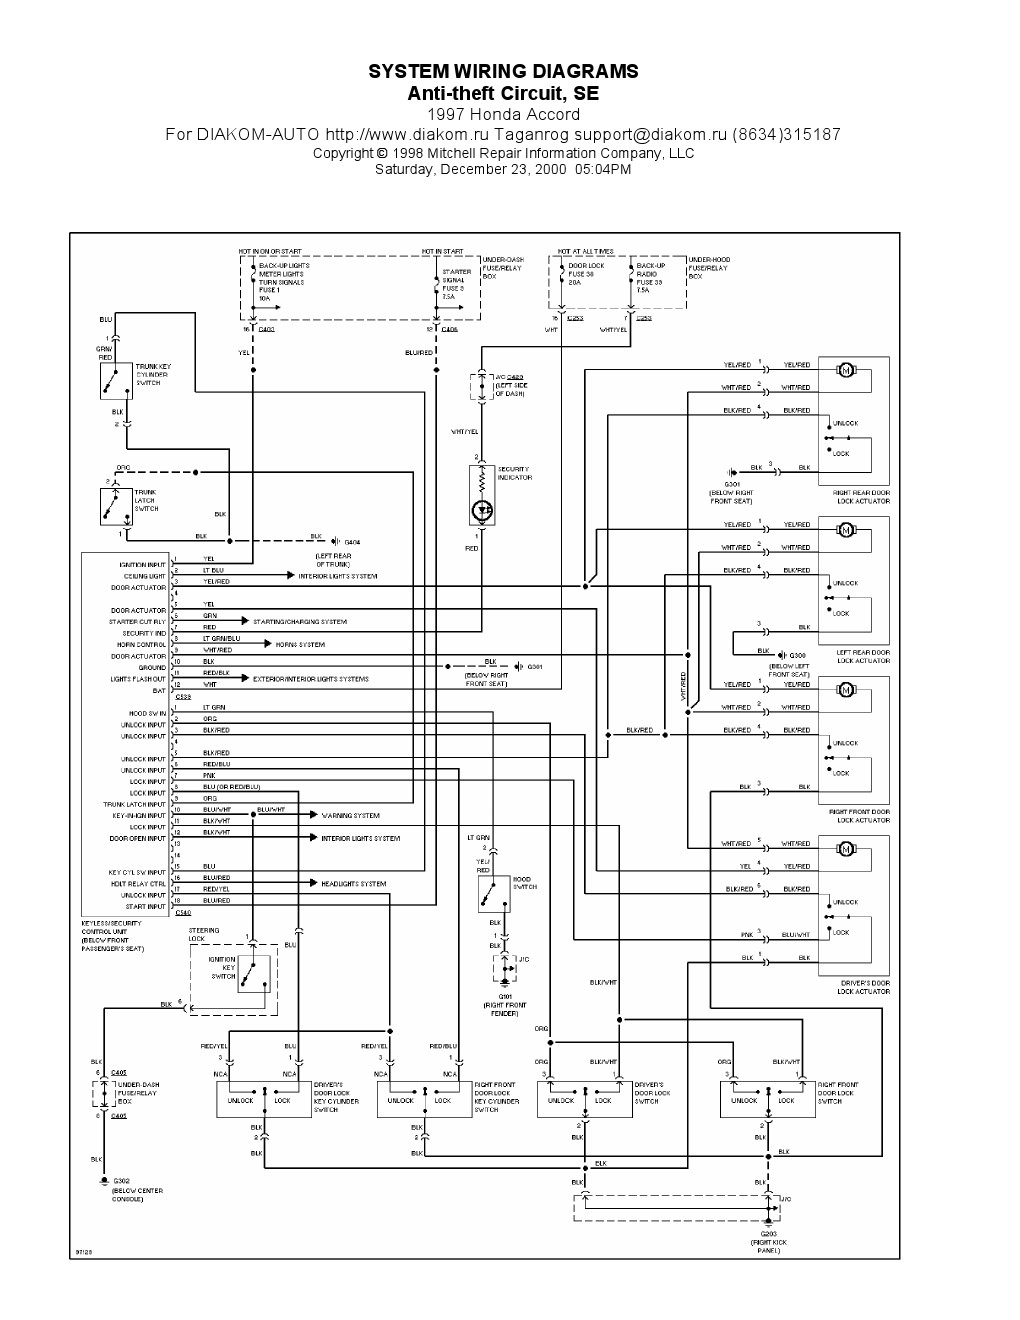 1996 honda accord ignition wiring diagram sample. Black Bedroom Furniture Sets. Home Design Ideas